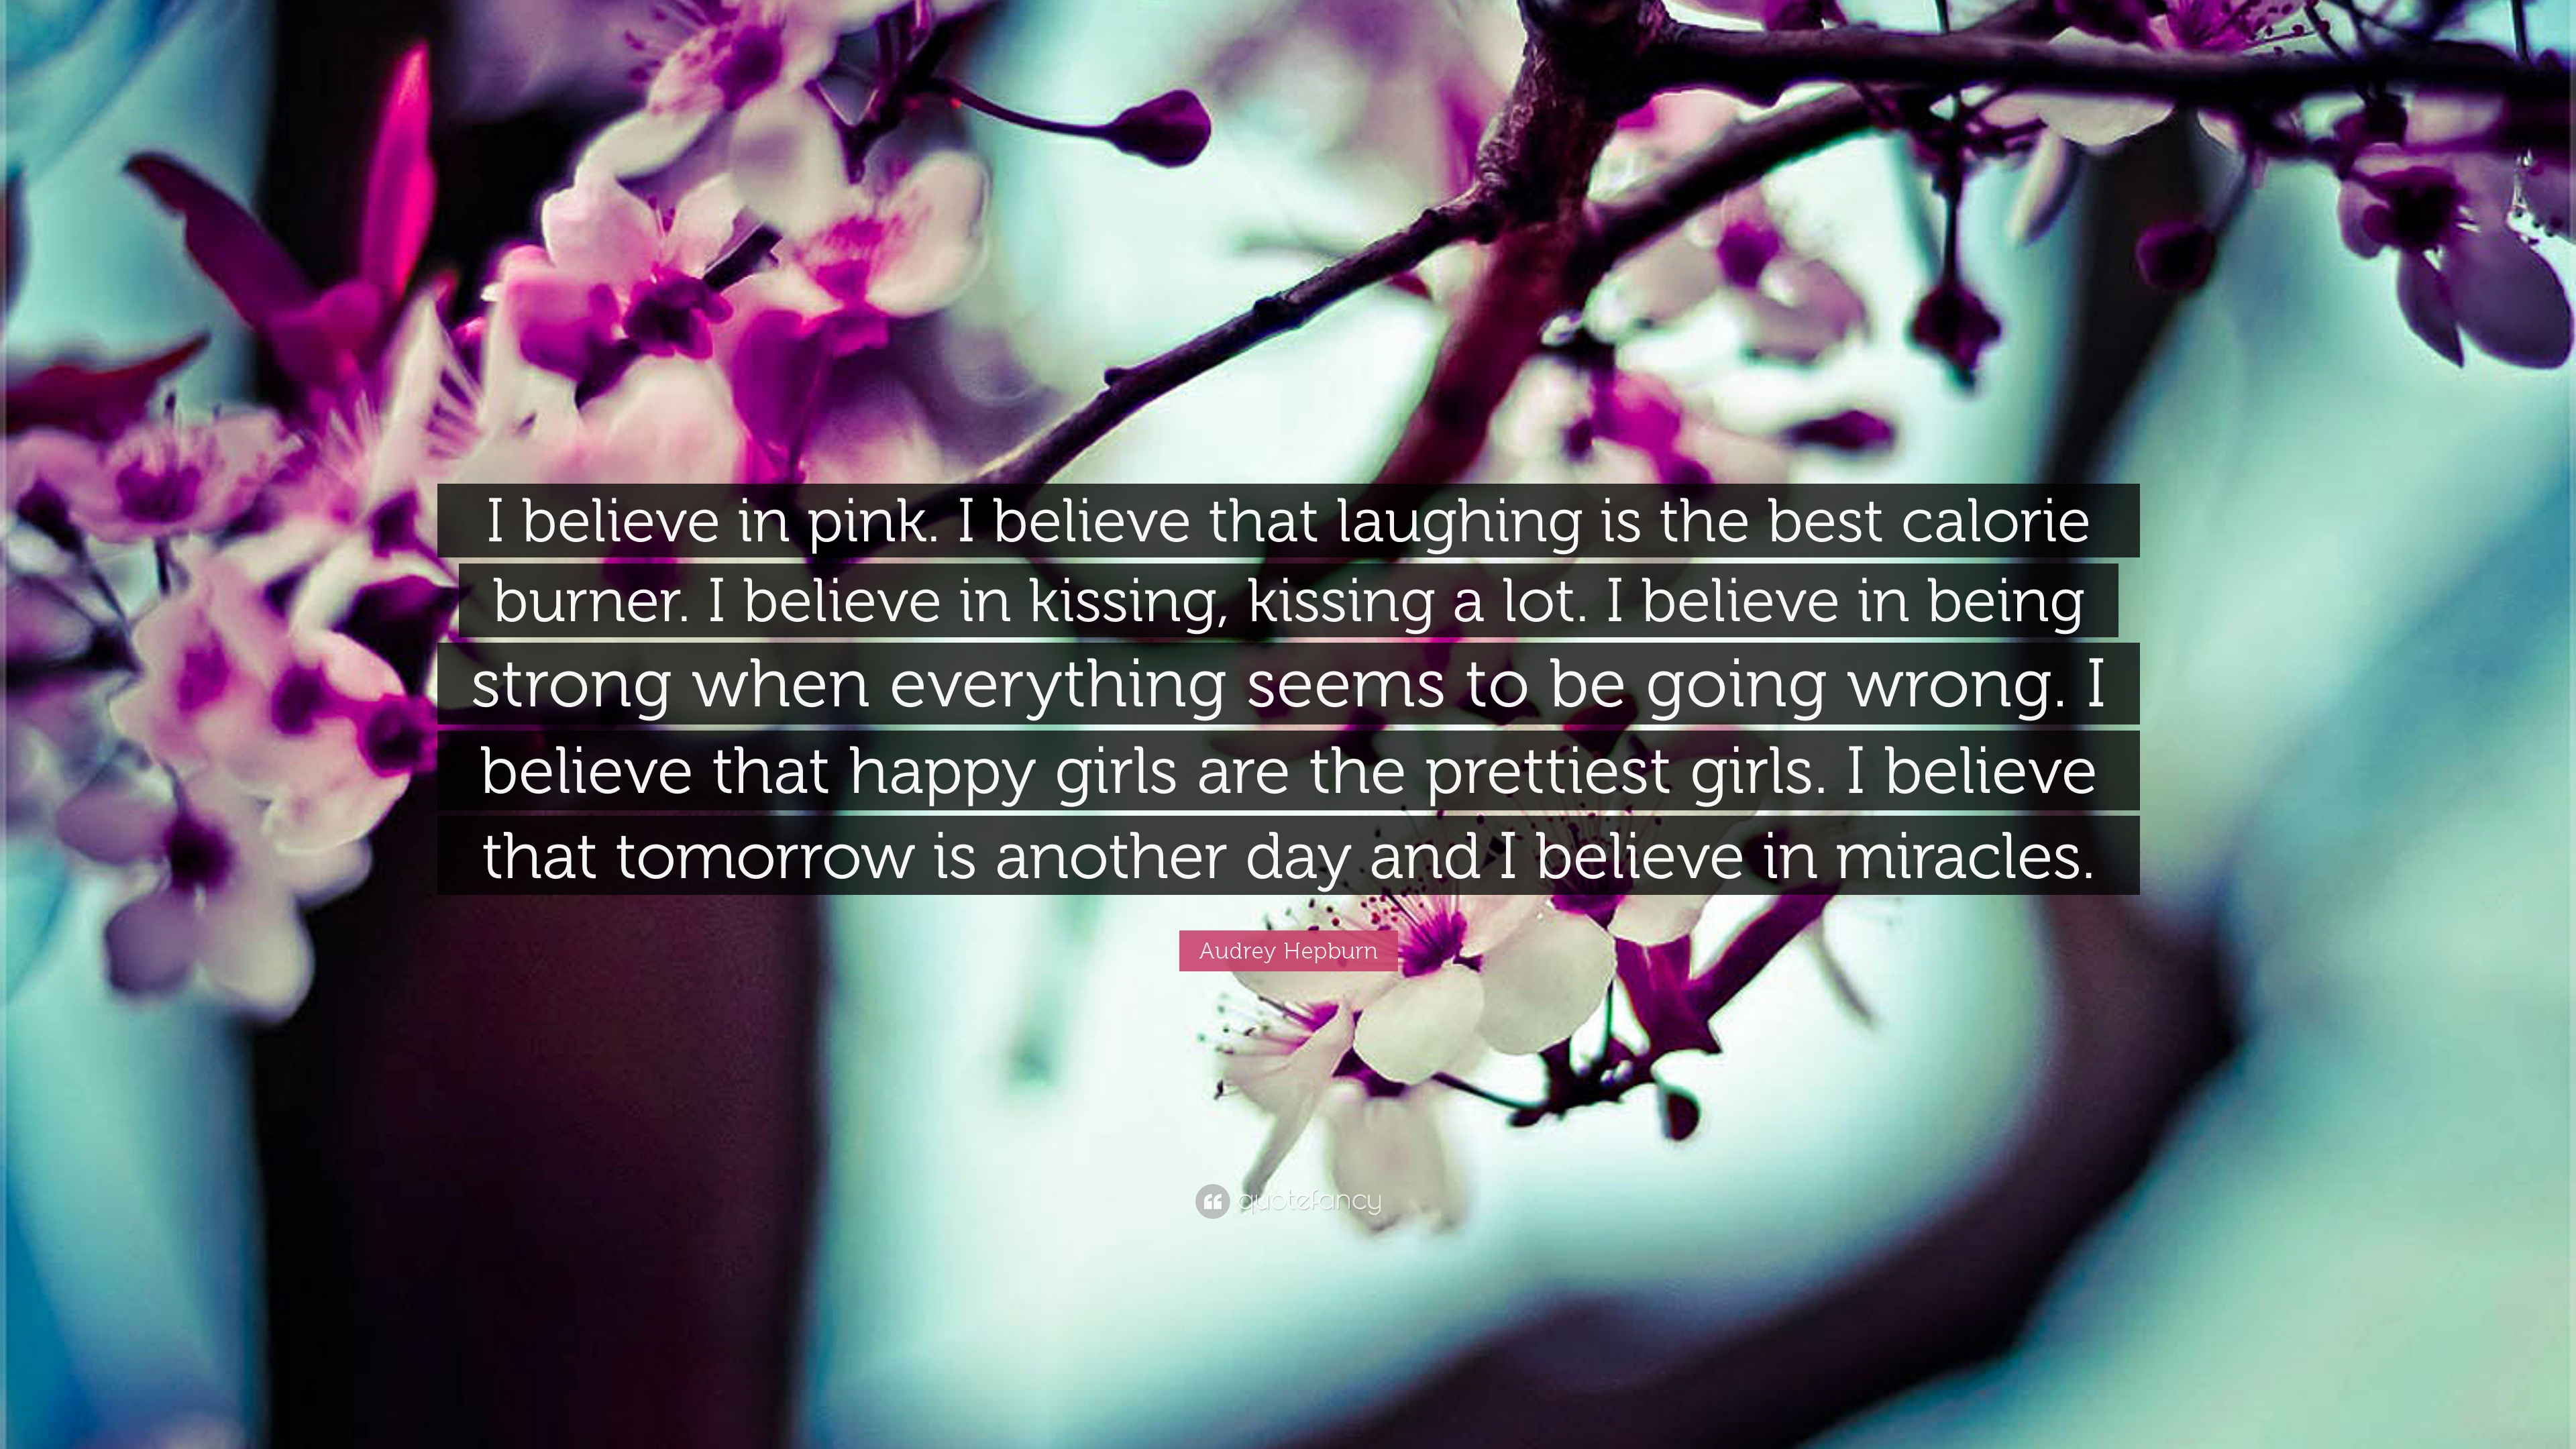 Audrey hepburn quote i believe in pink i believe that laughing is audrey hepburn quote i believe in pink i believe that laughing is the mightylinksfo